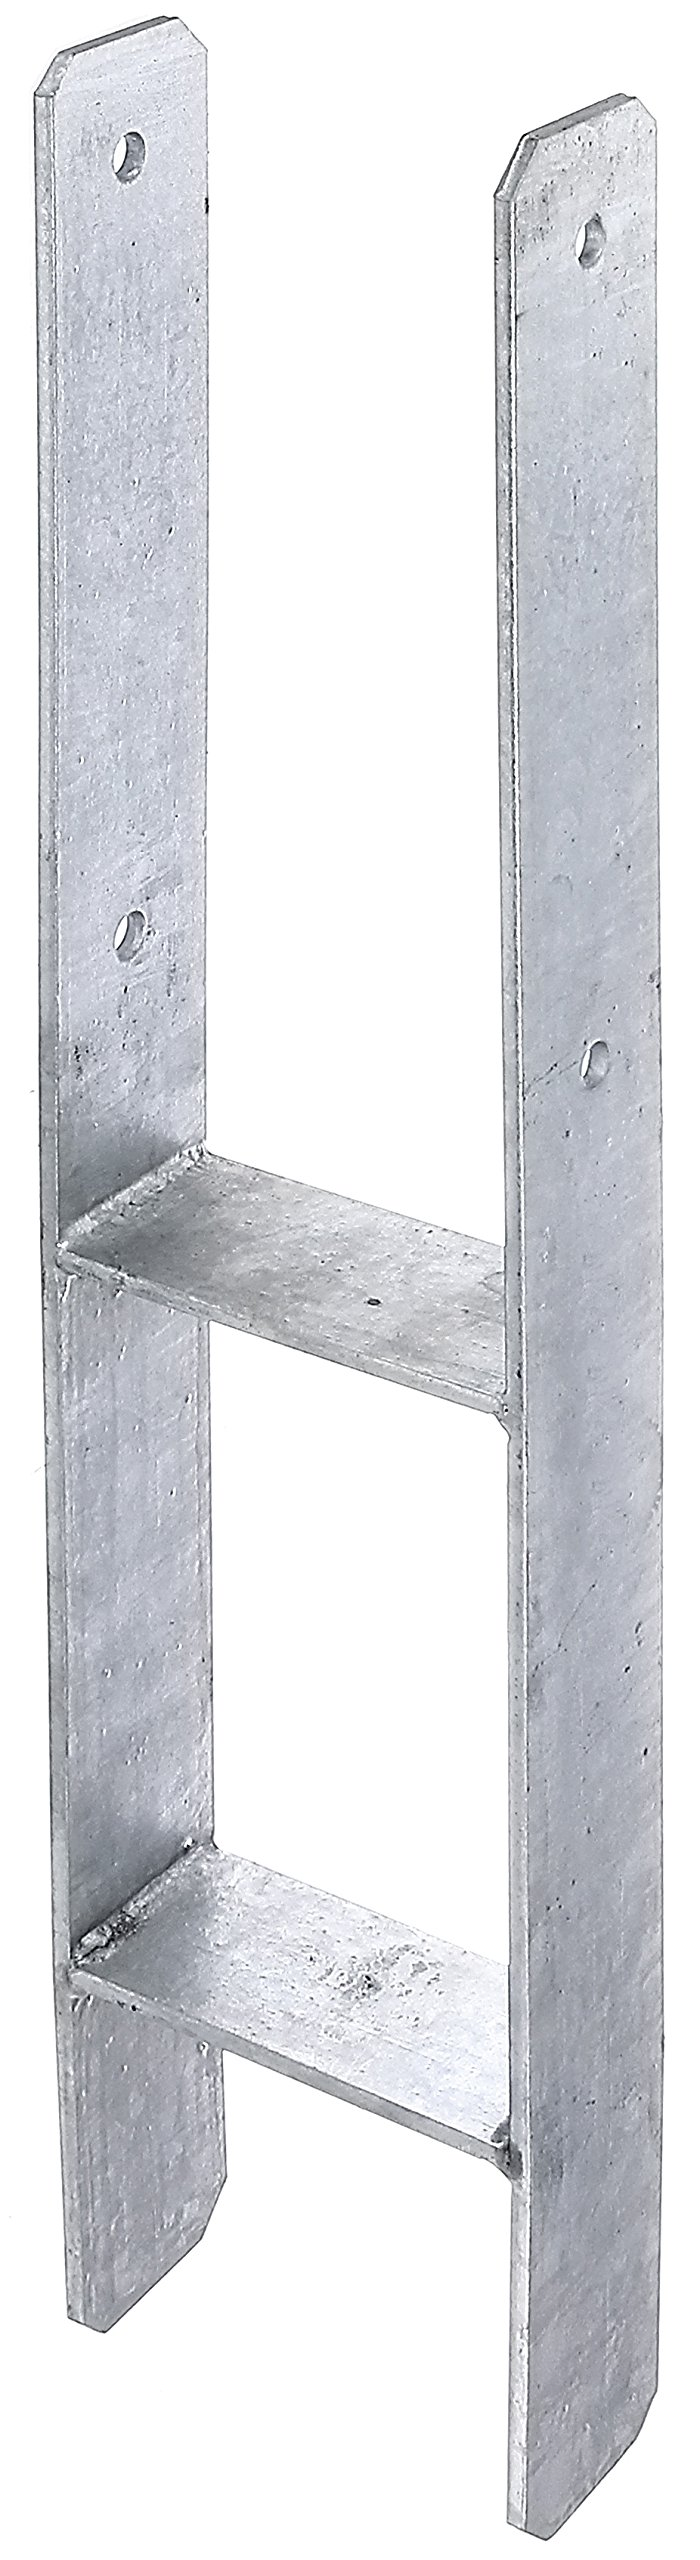 GAH-Alberts 213800 H-Post Base Hot-dip Galvanised, Total Height: 600 mm, Material Thickness: 5 mm lichte Breite: 121 mm